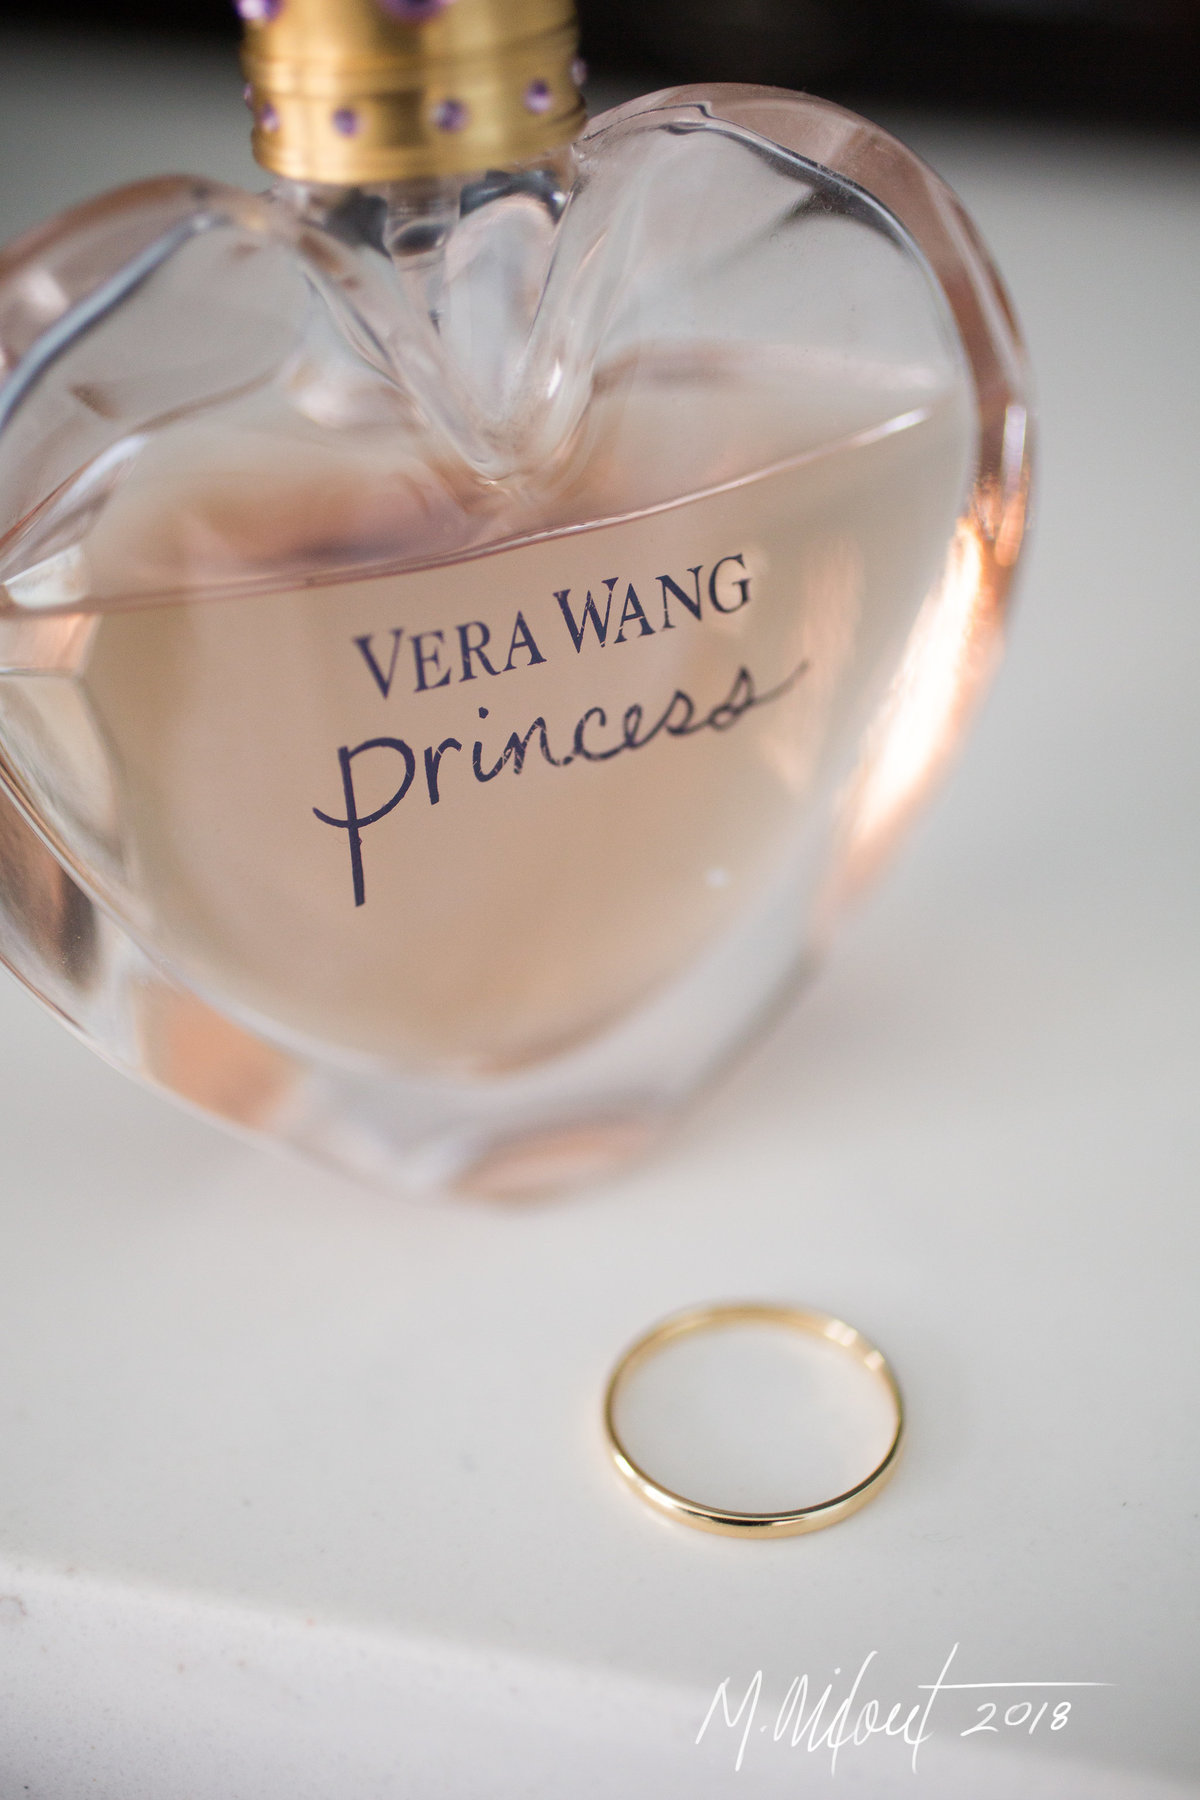 vera wang princess perfume and wedding ring